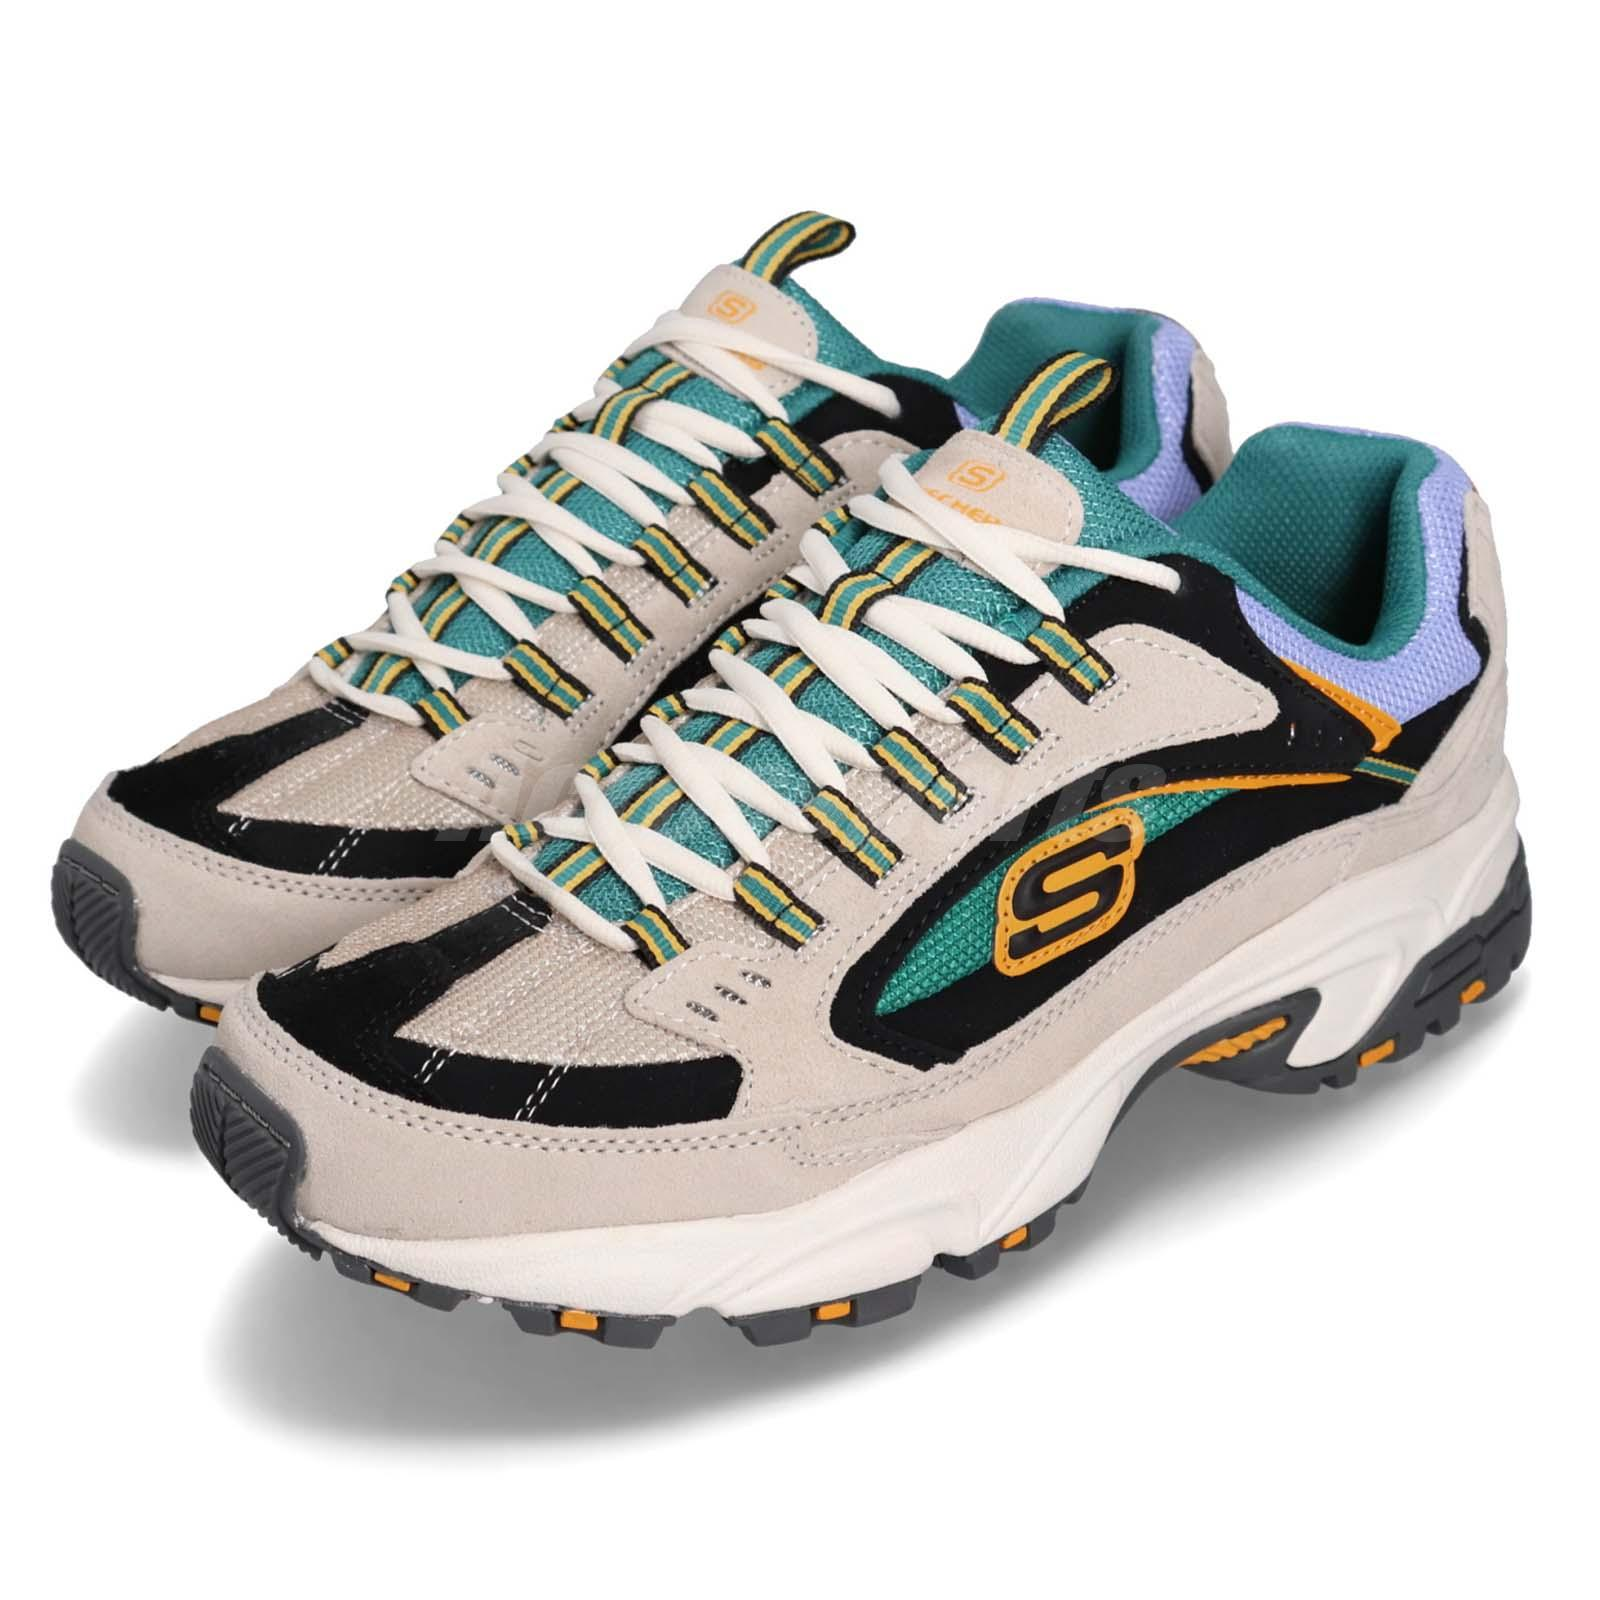 4aebd88913ea Details about Skechers Stamina-Cutback Grey Green Black Yellow Men  Lifestyle Shoes 51286-WMLT